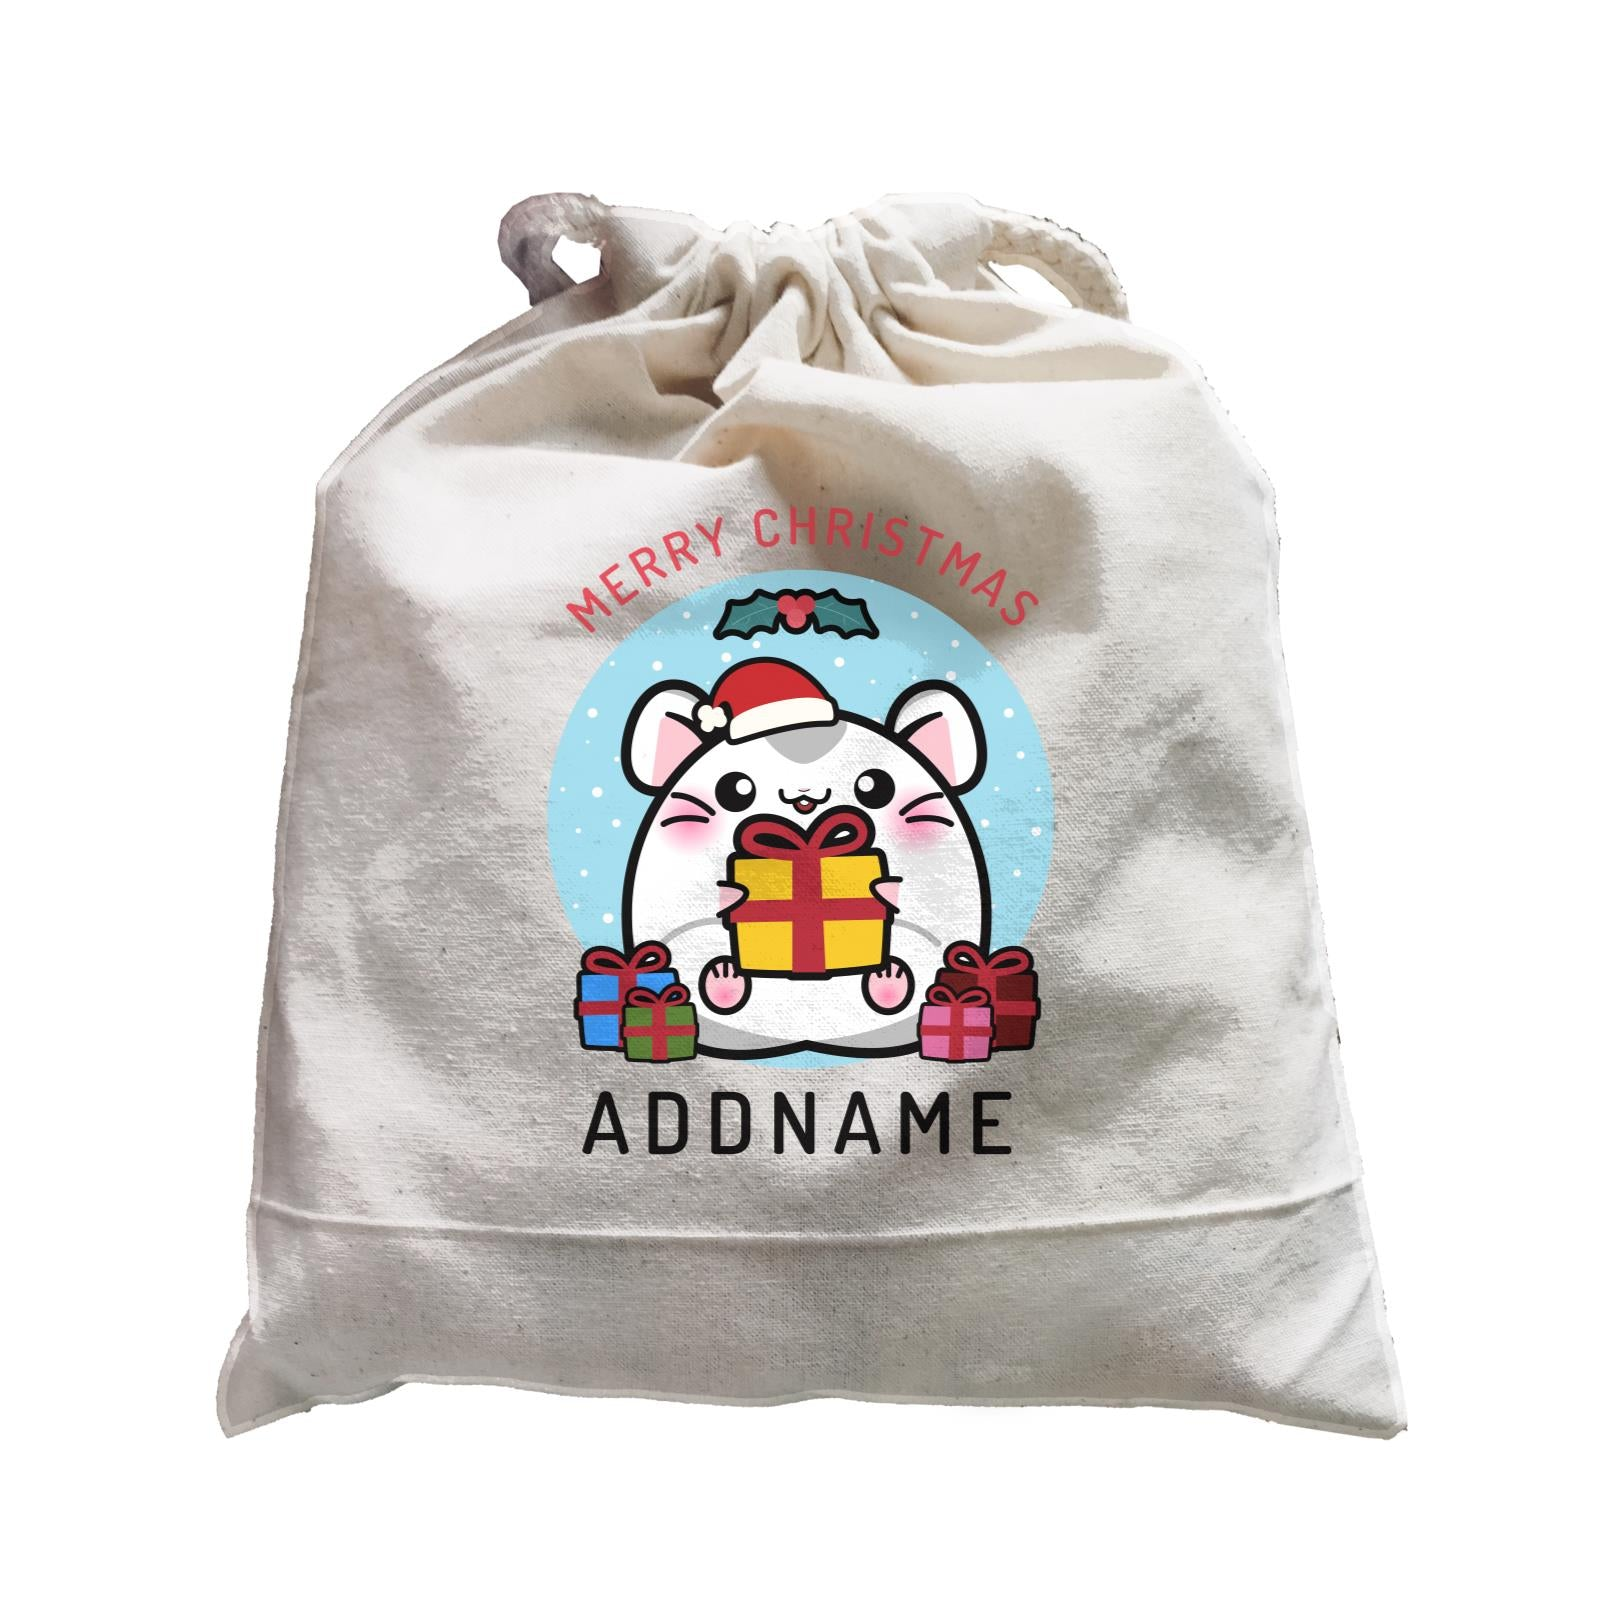 Merry Christmas Cute Santa Boy Hamster with Gifts Satchel